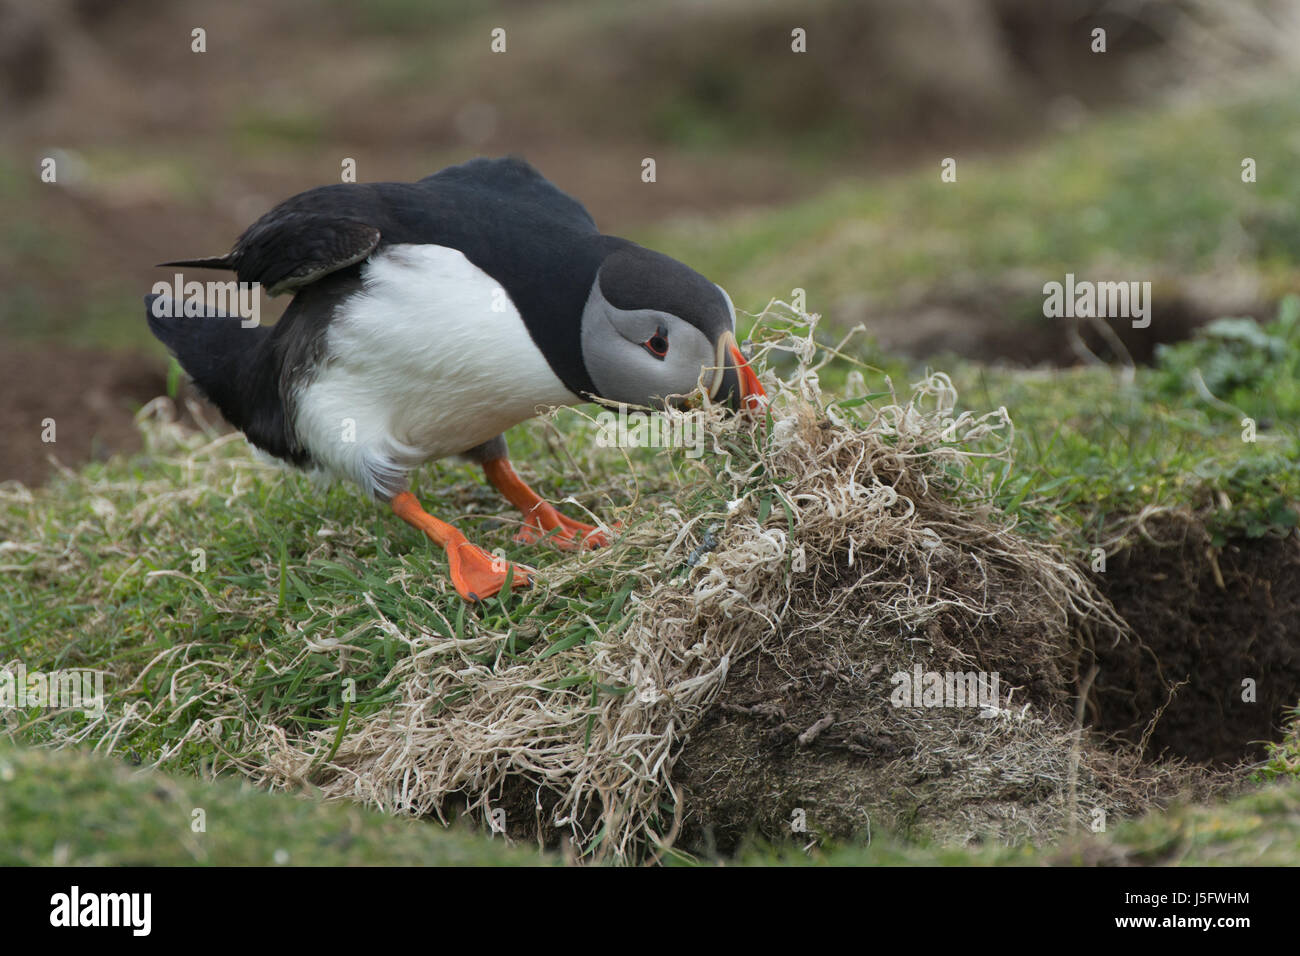 Puffin trying to dislodge nest building material on the Scottish island of Lunga - Stock Image